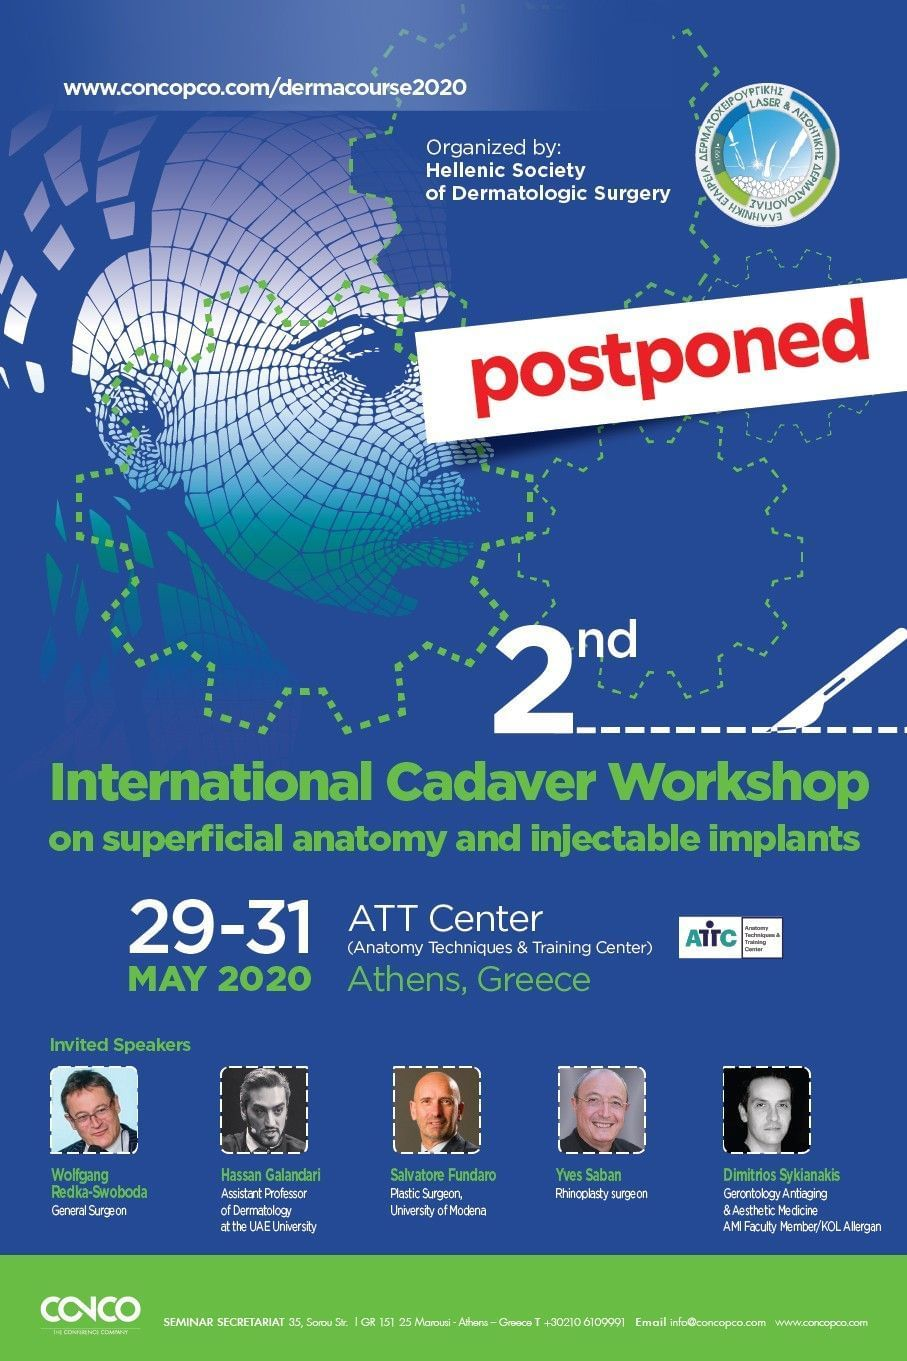 2nd INTERNATIONAL CADAVER WORKSHOP ON SUPERFICIAL ANATOMY AND INJECTABLE IMPLANTS